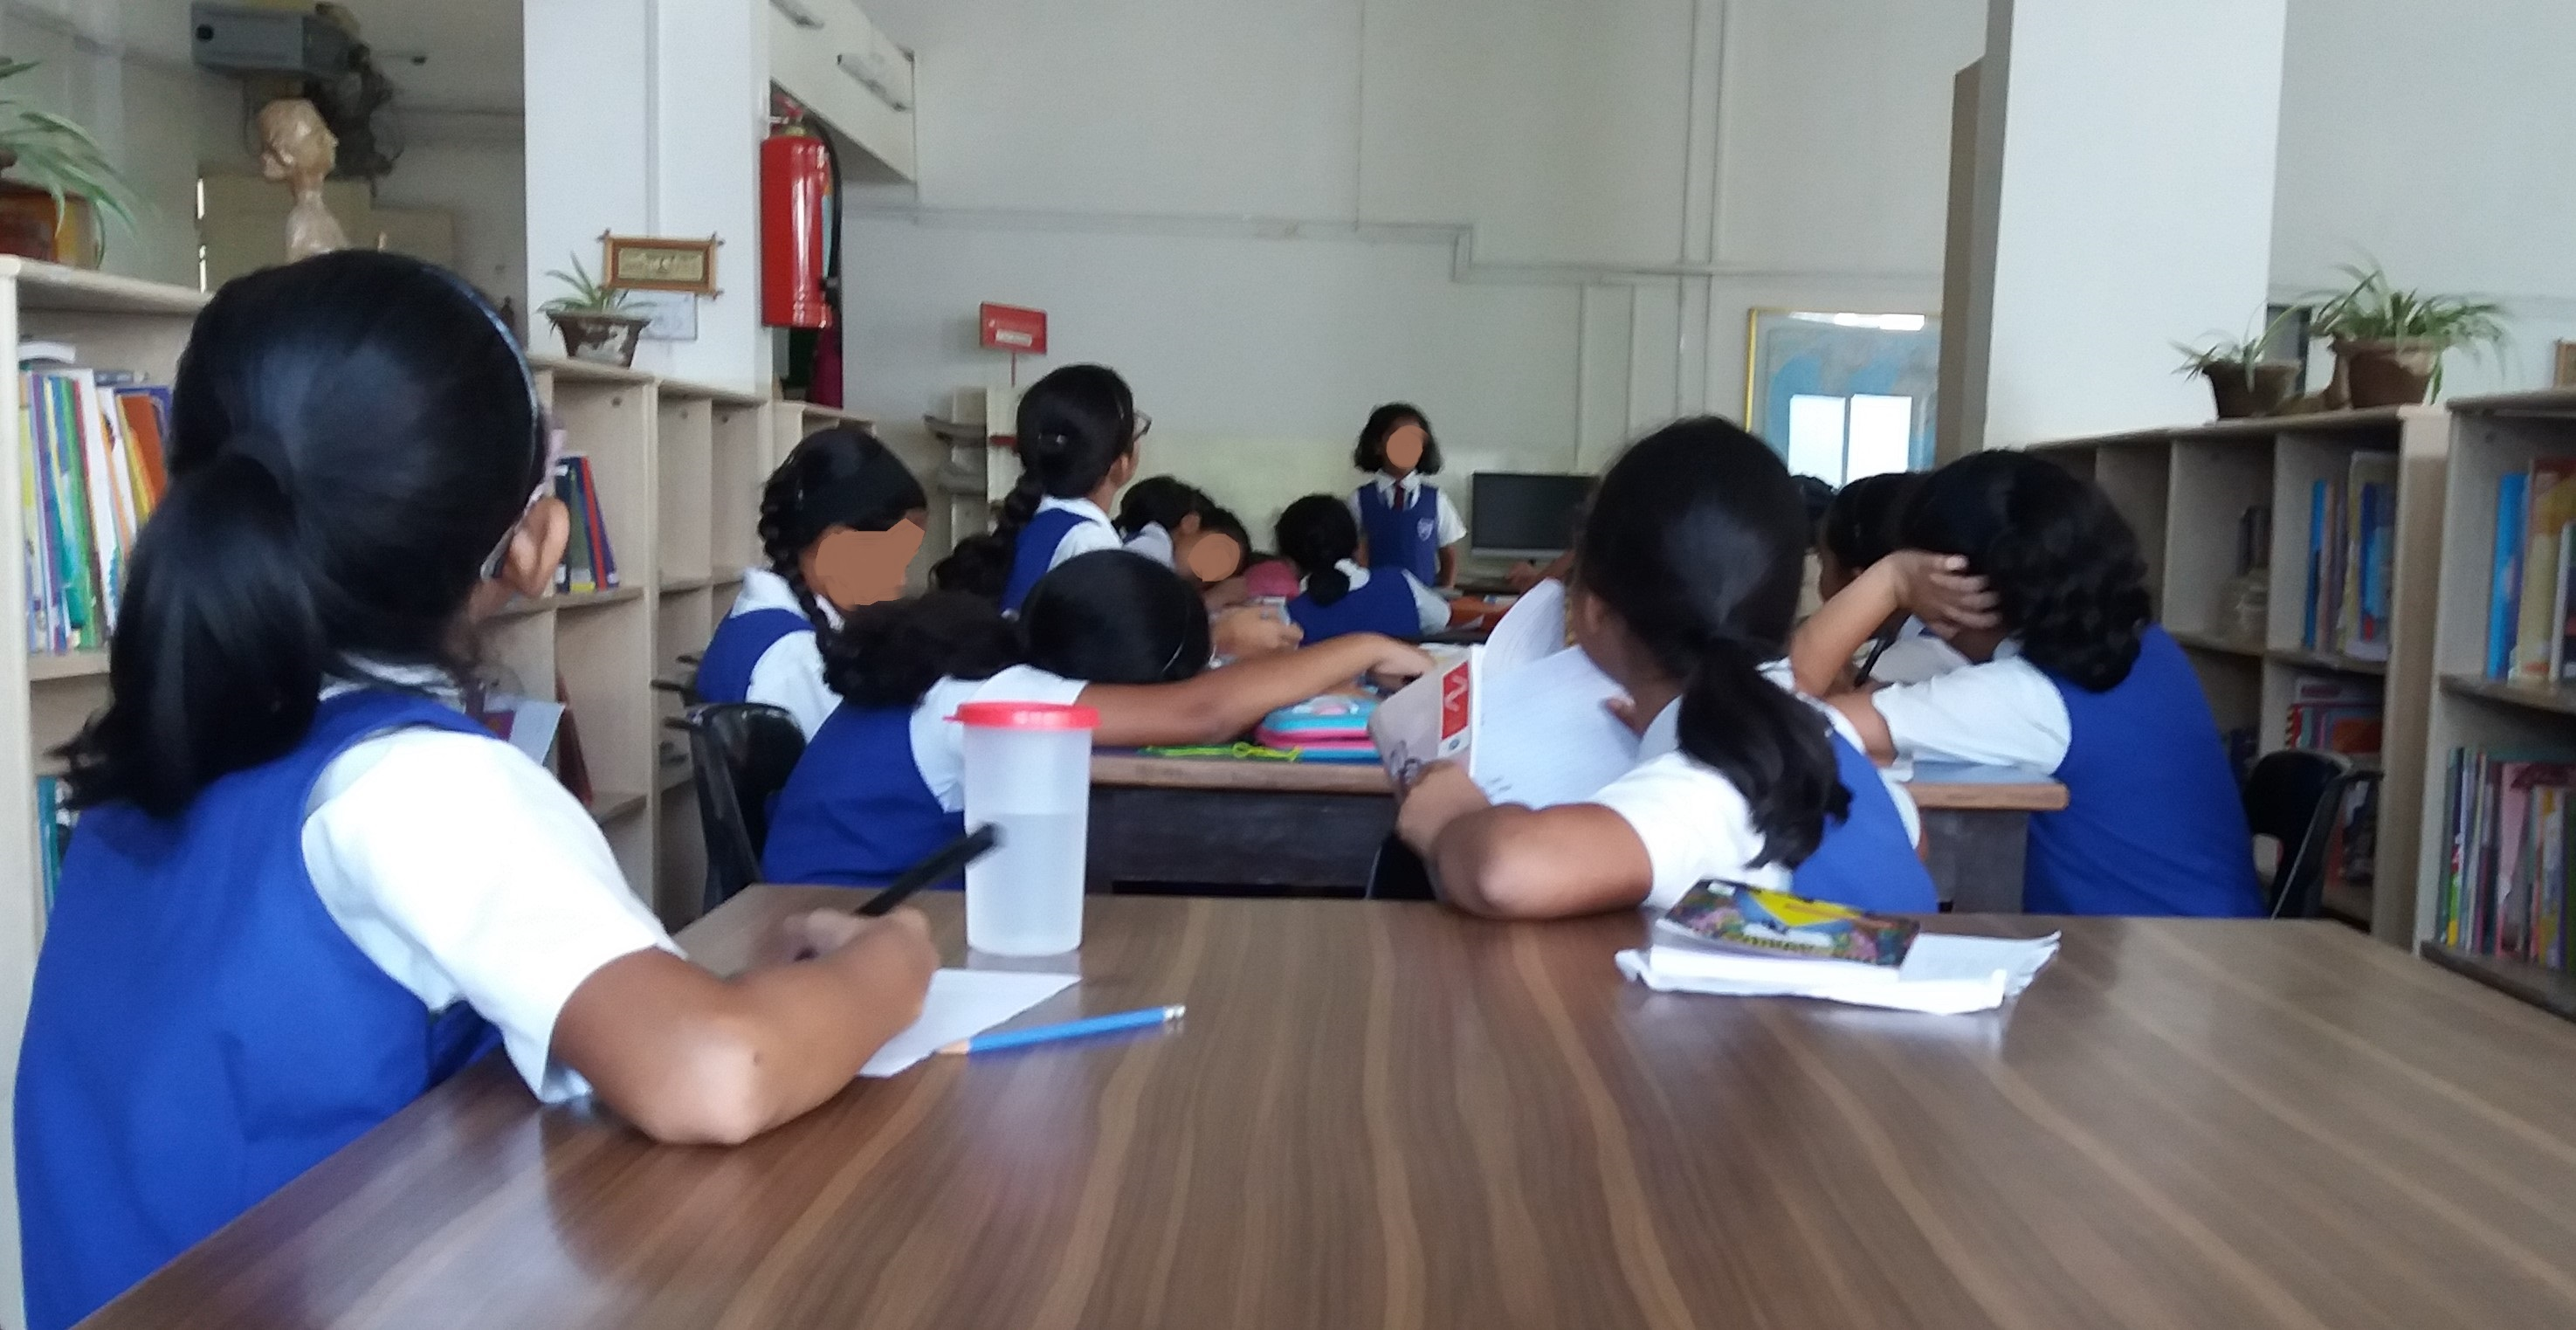 Girls sitting in a library looking ahead at one girl who is standing and speaking. Everyone is in uniform. Faces deliberately blurred.